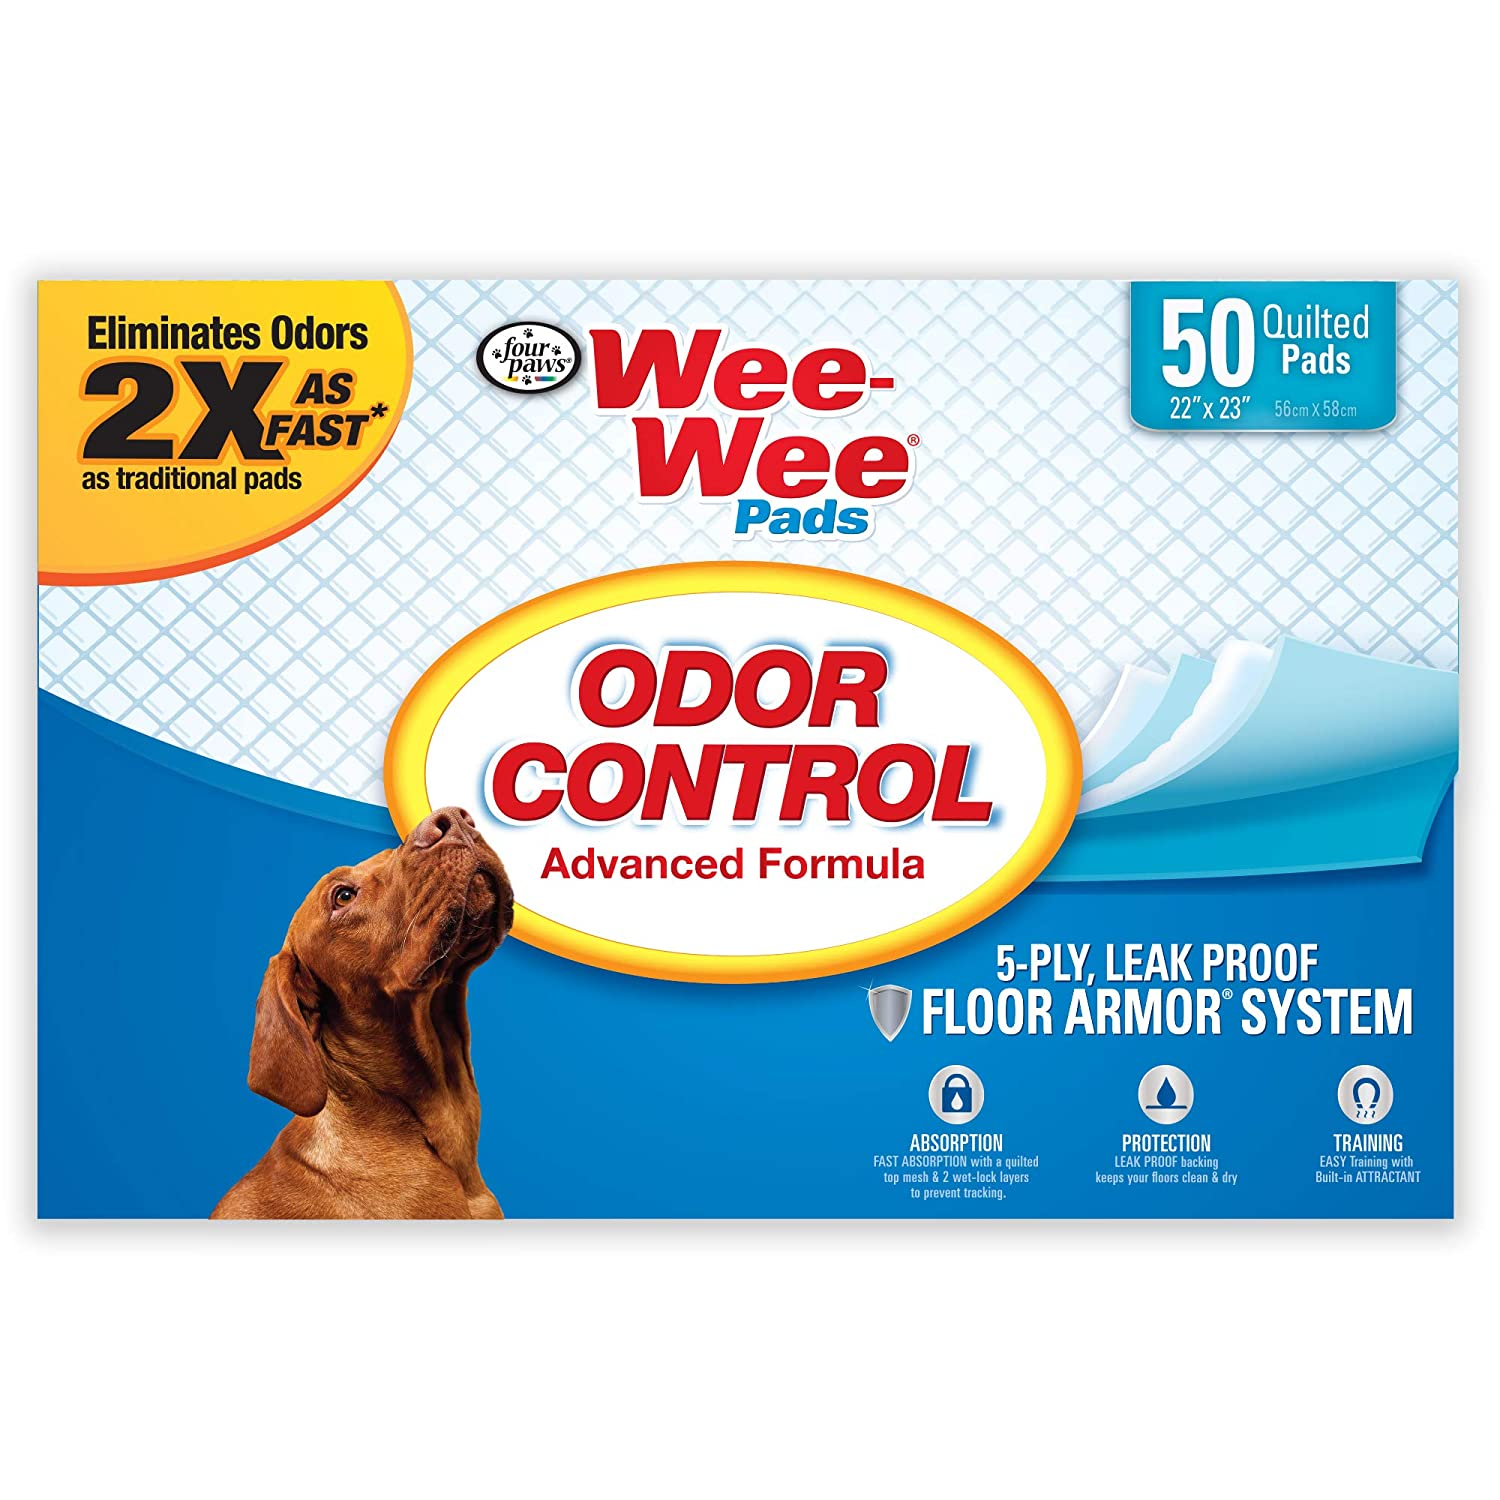 Four Paws Wee-Wee Odor Control Absorbent Pads for Dogs, 50 Count